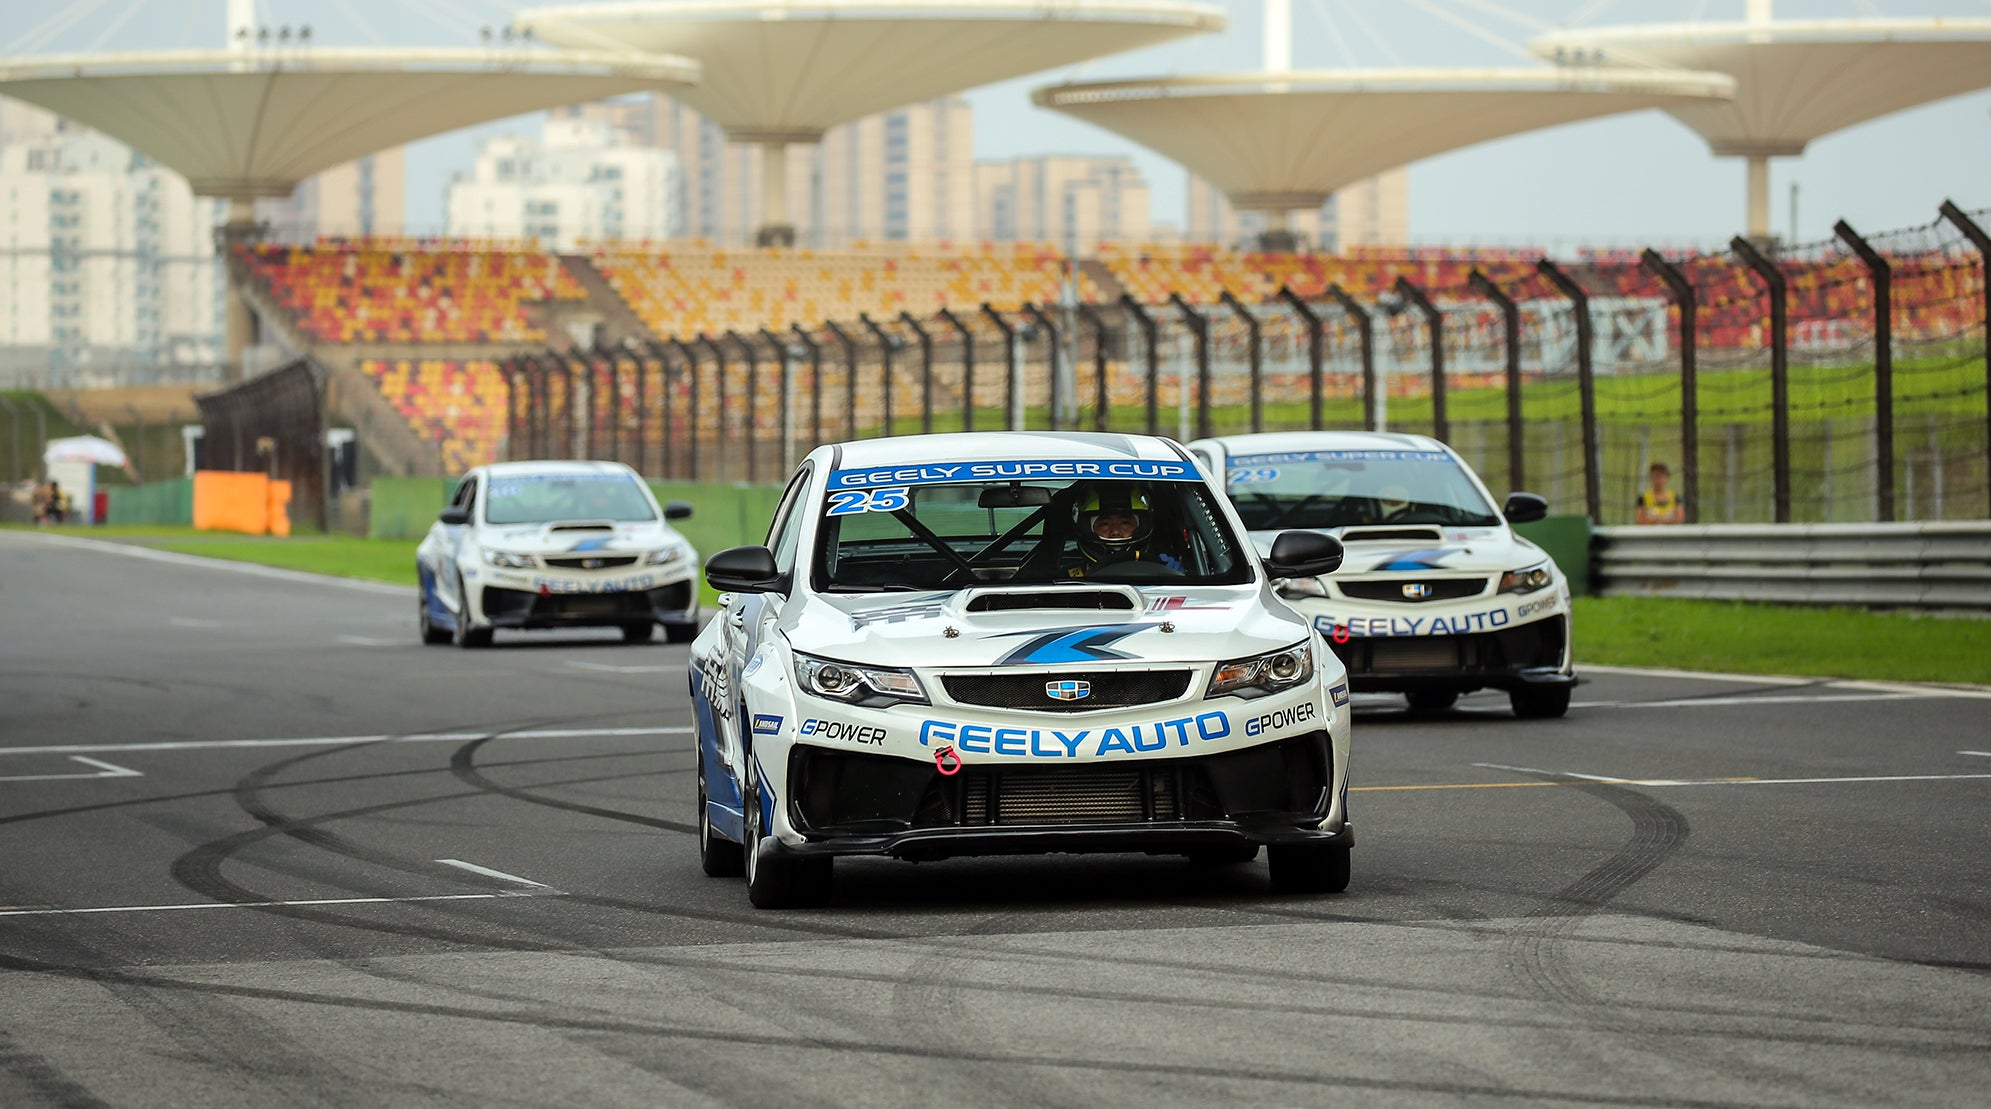 I Went To China To Race A New Car. Then Things Got Weird